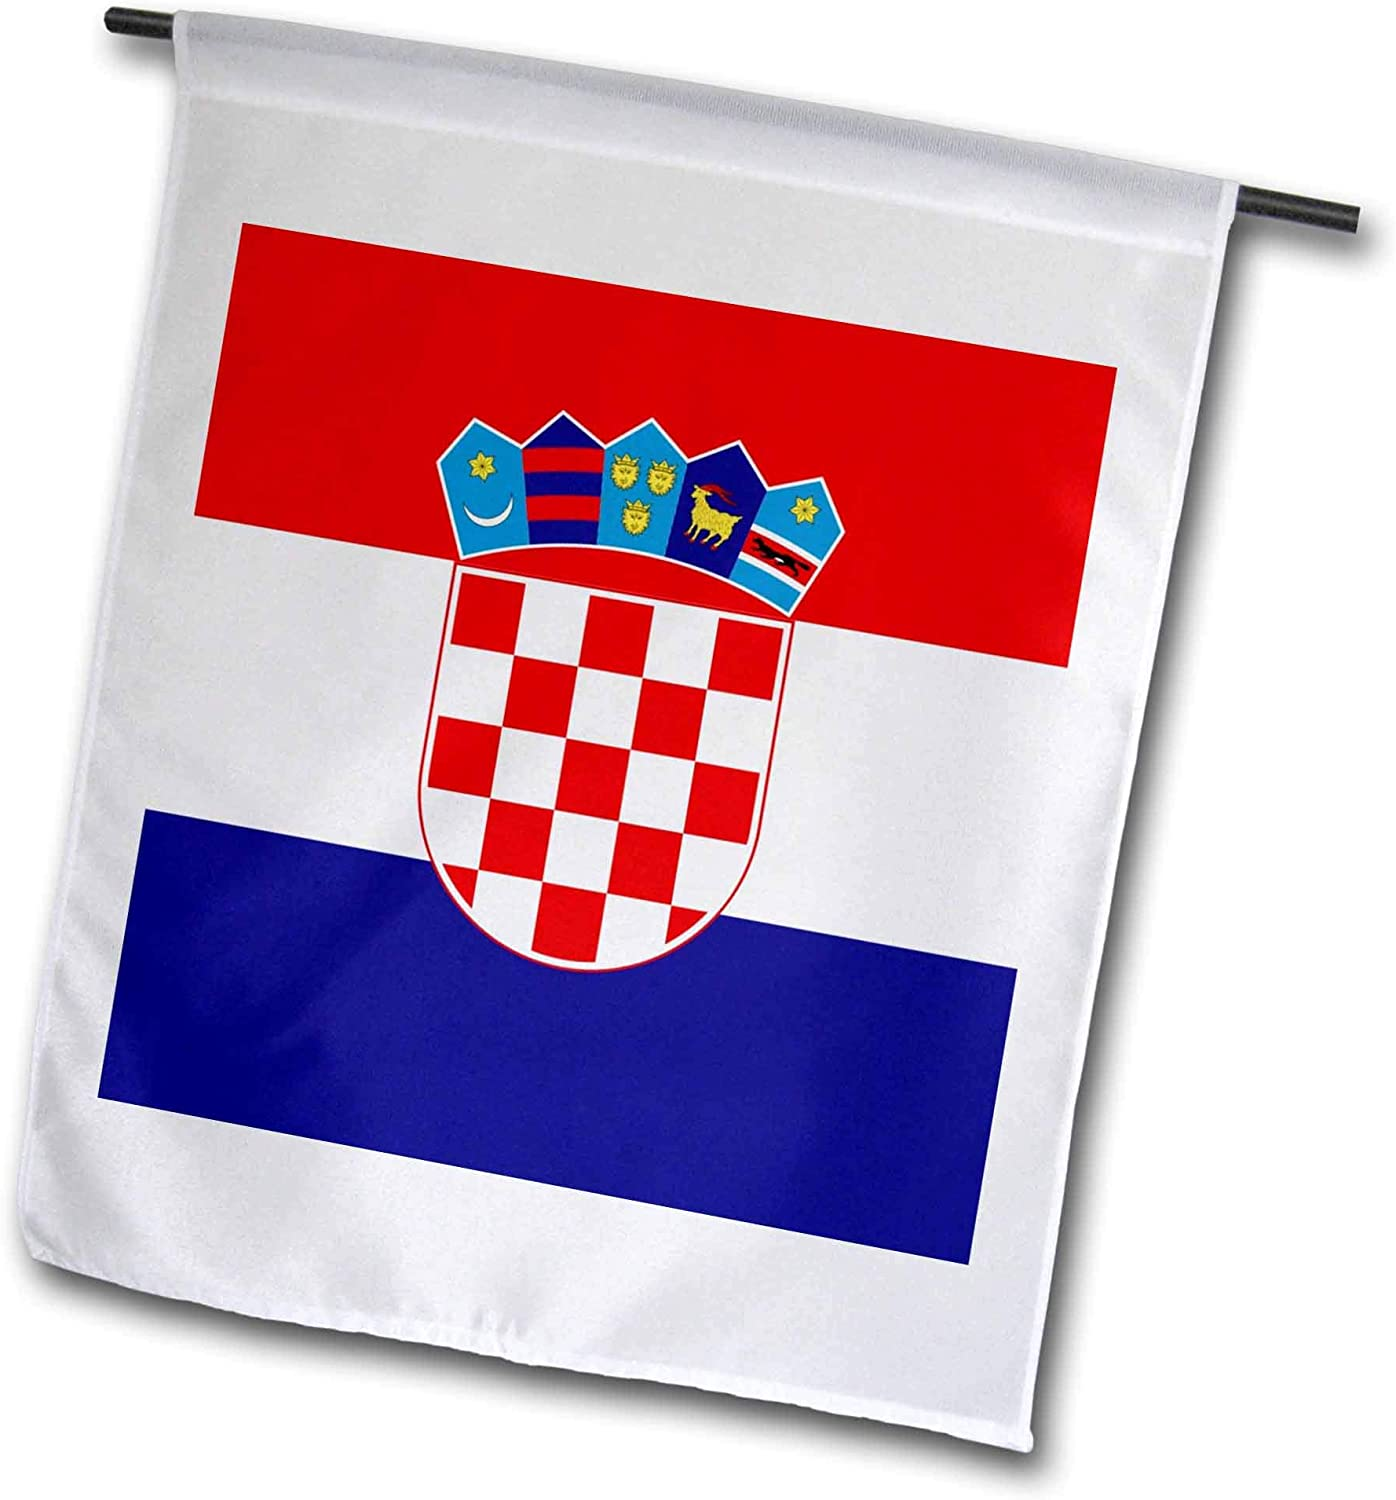 3dRose fl_158301_1 Flag of Croatia-Croat Red White Blue Stripes-Croatian Coat of Arms Shield-Europe Country World Garden Flag, 12 by 18-Inch